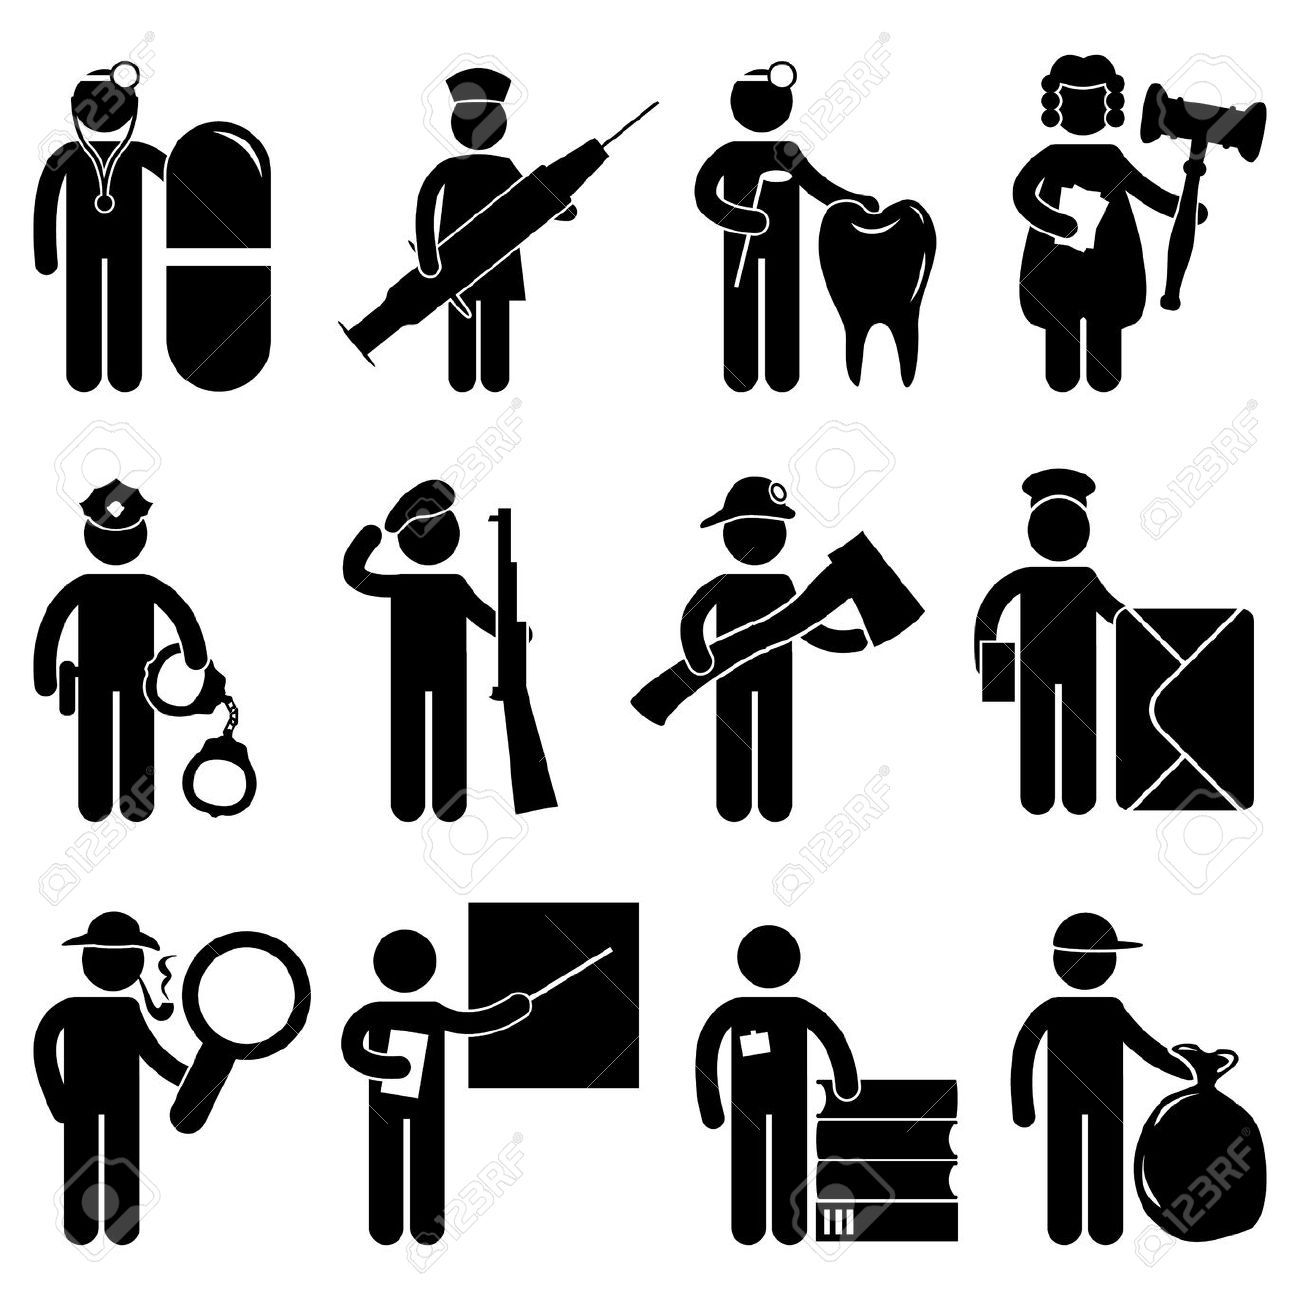 Stock Vector Physical therapy, Pictogram, Stick figures